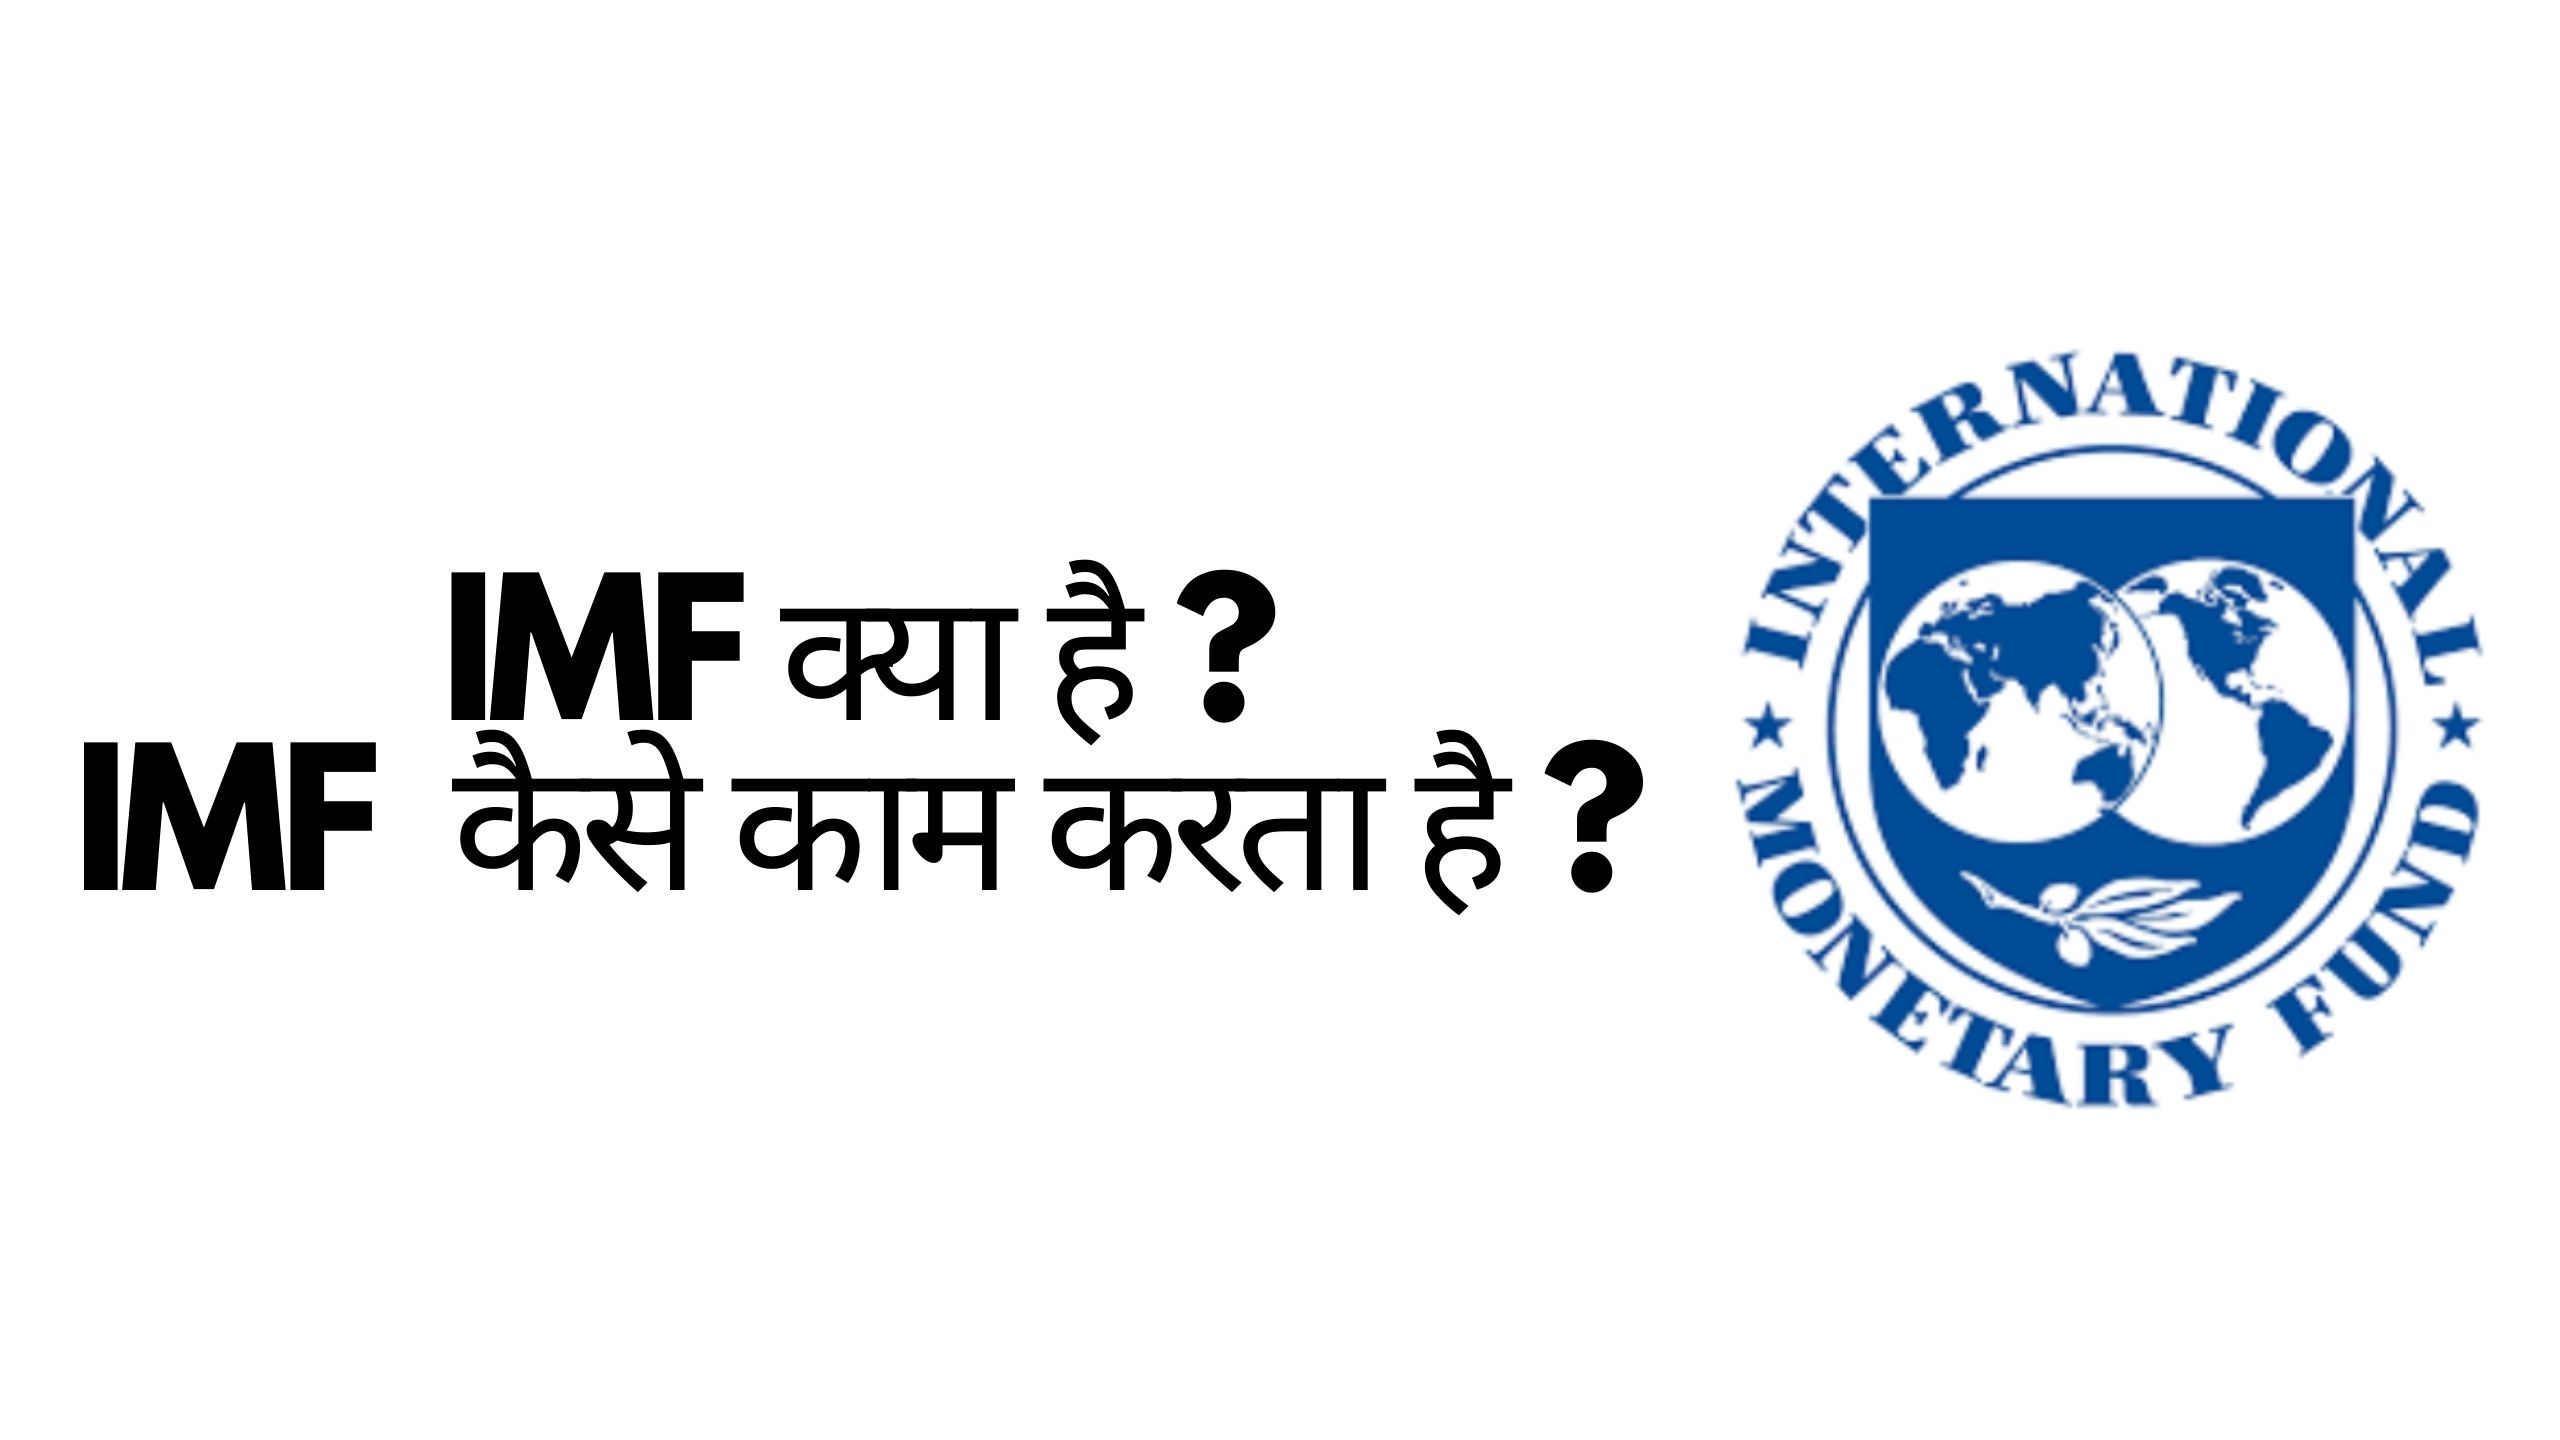 IMF full form